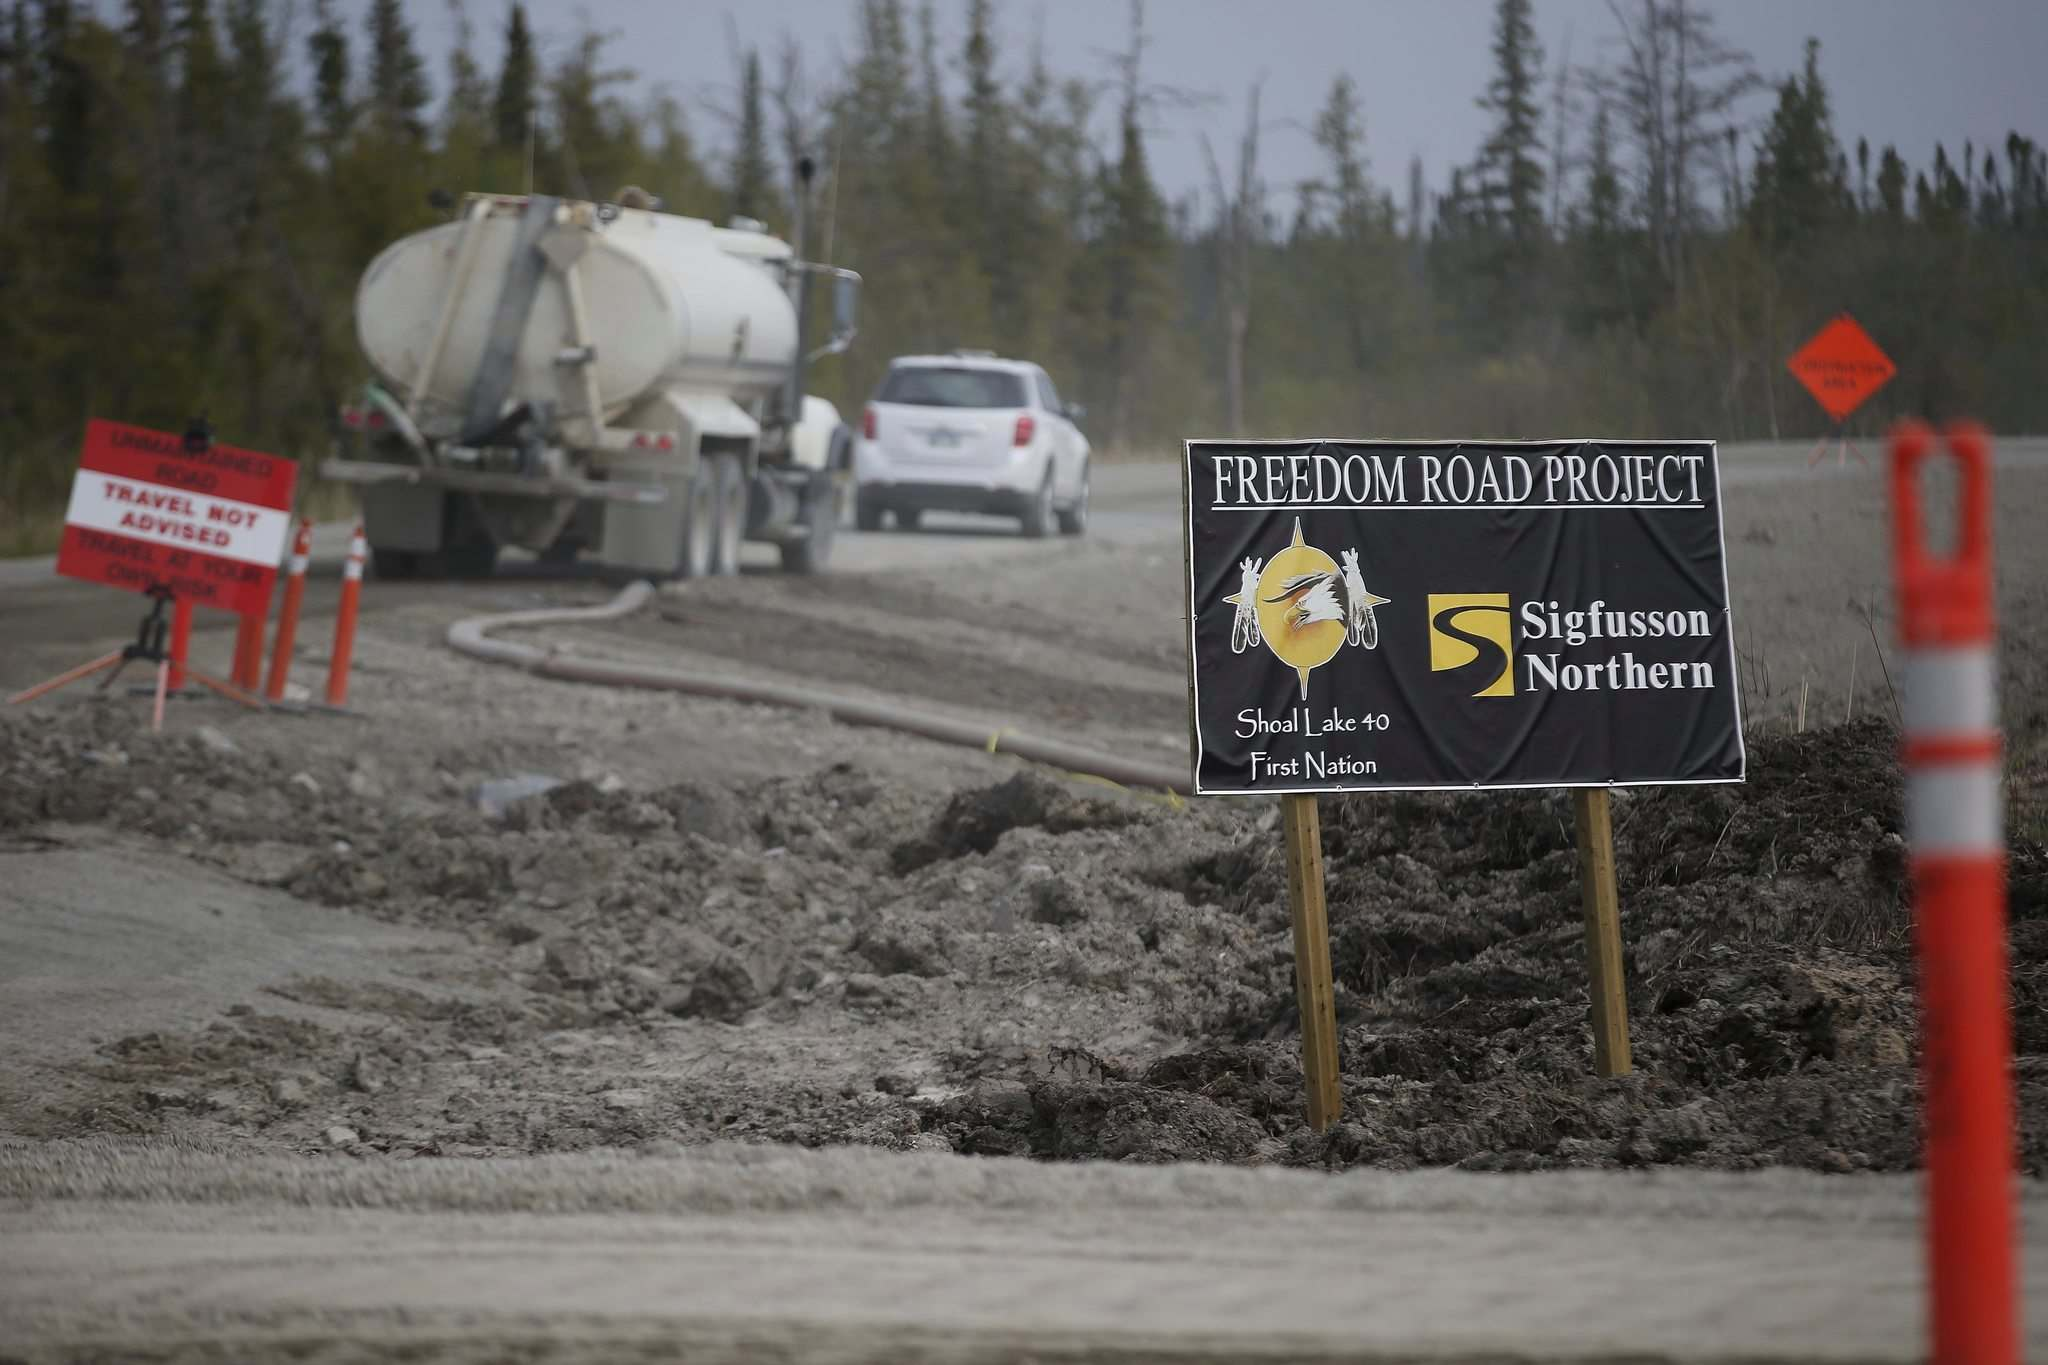 One-quarter of Shoal Lake's population worked on building Freedom Road. (John Woods / The Canadian Press files)